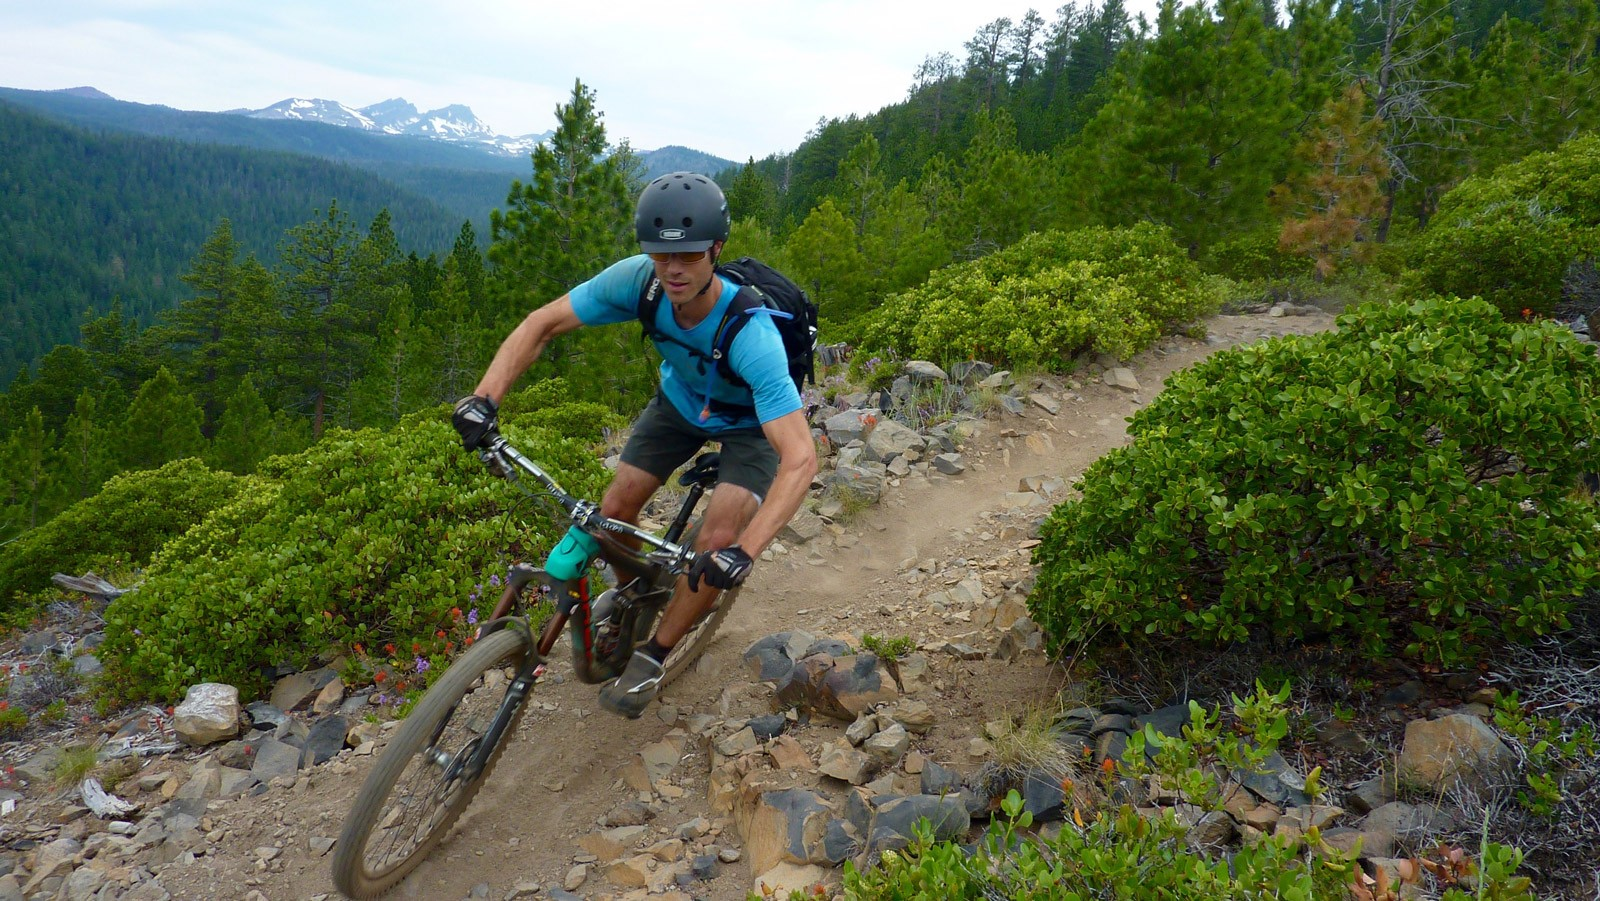 His skills and knowledge extend far beyond just trials riding, he's a charger on singletrack